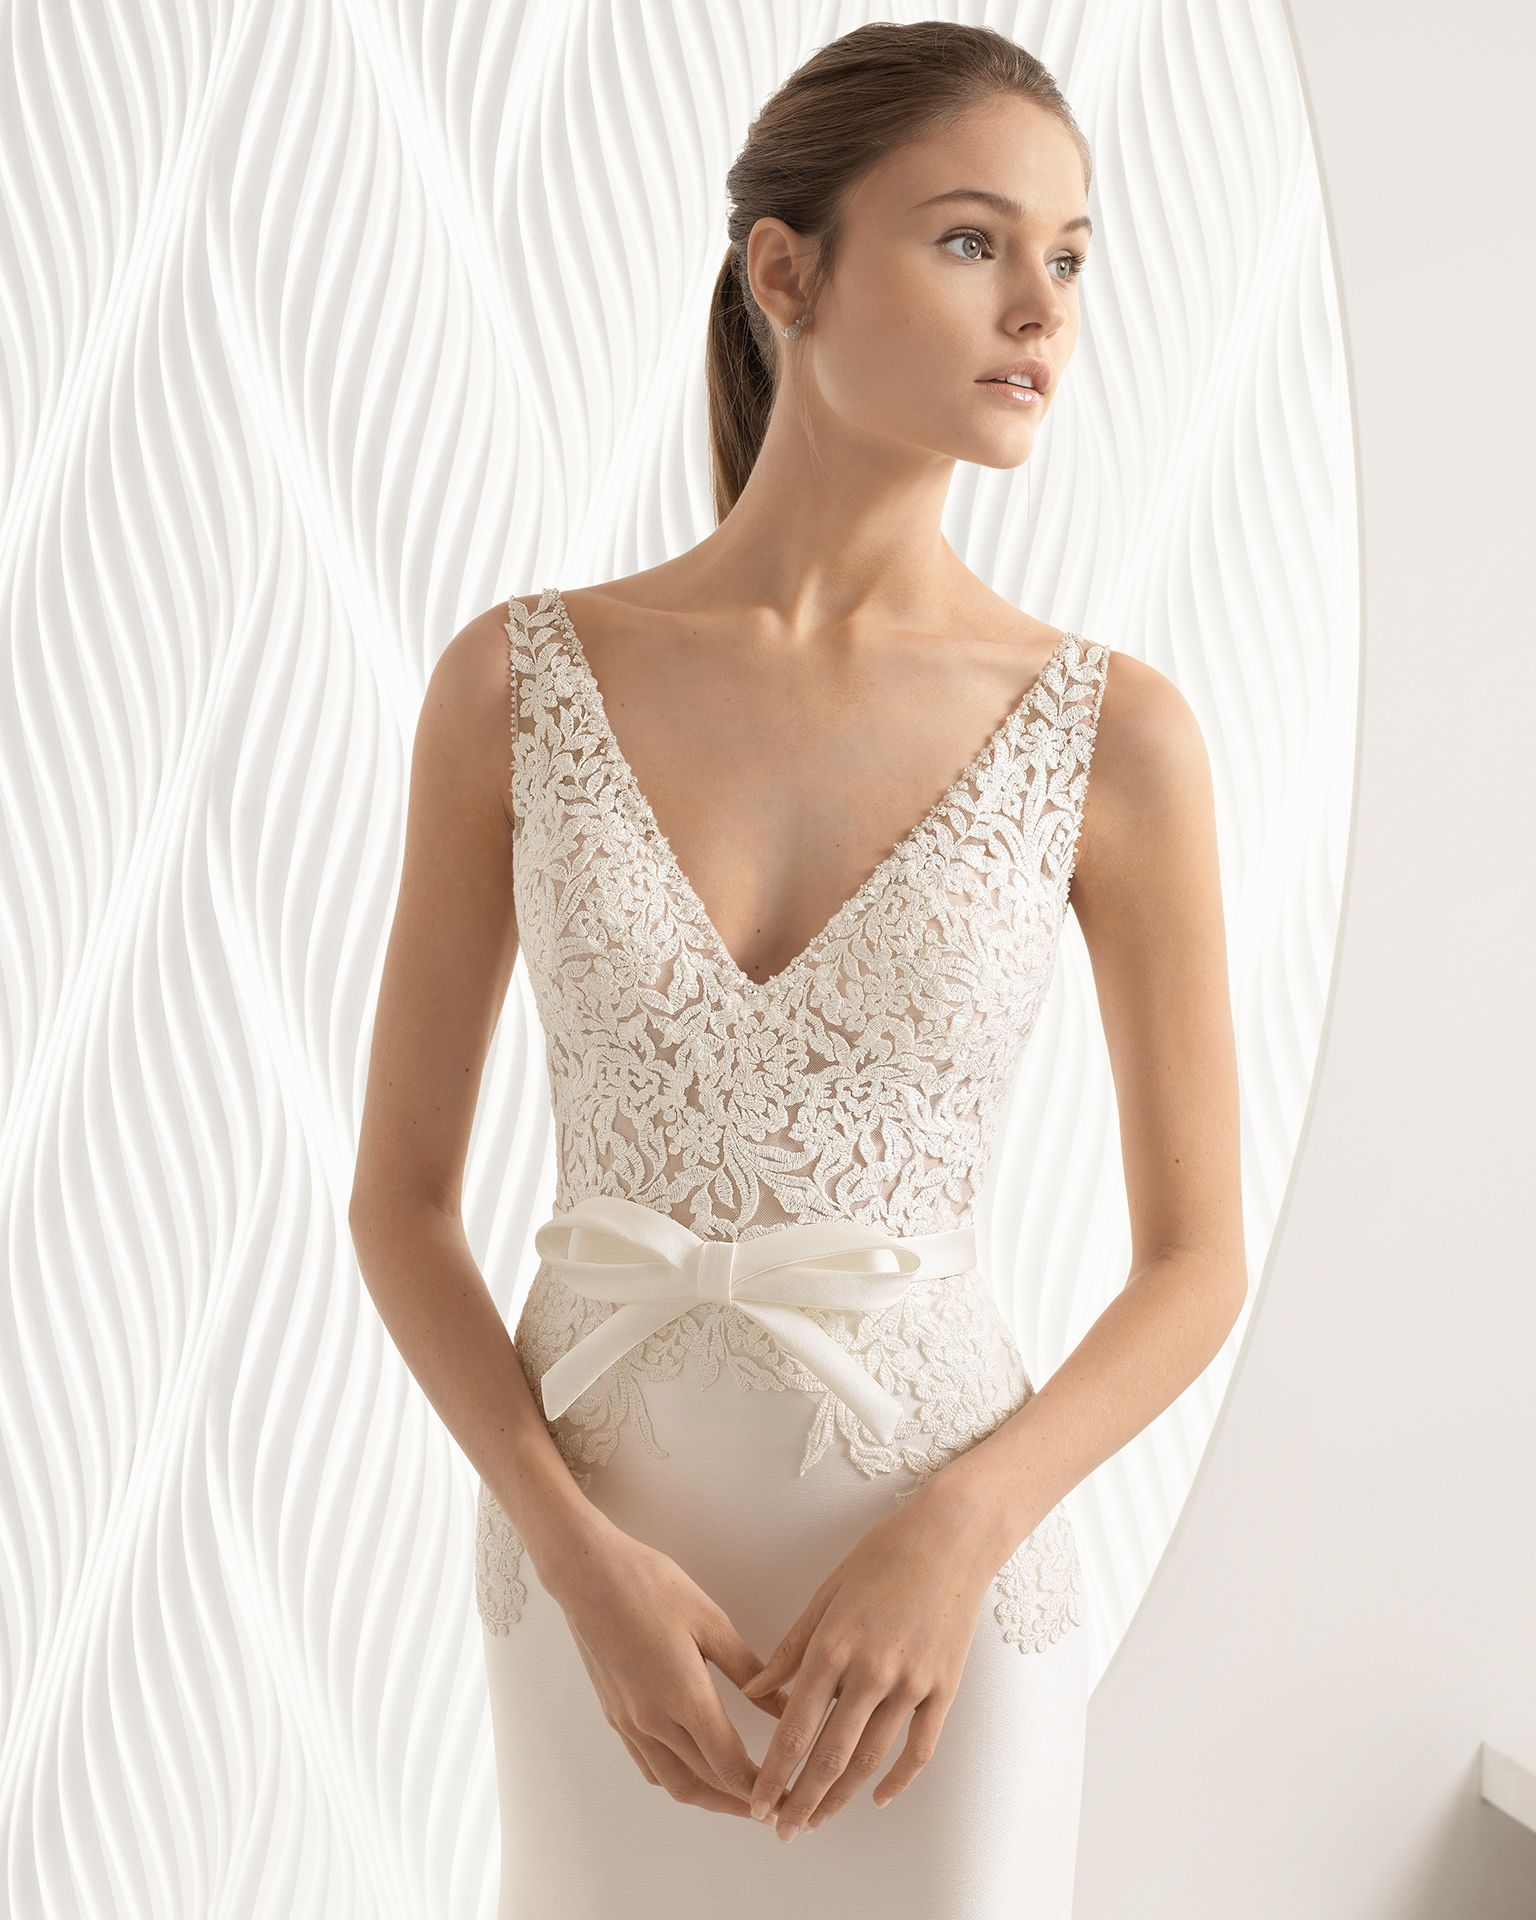 Arte noivas coleção rosa clará beaded lace wedding dress